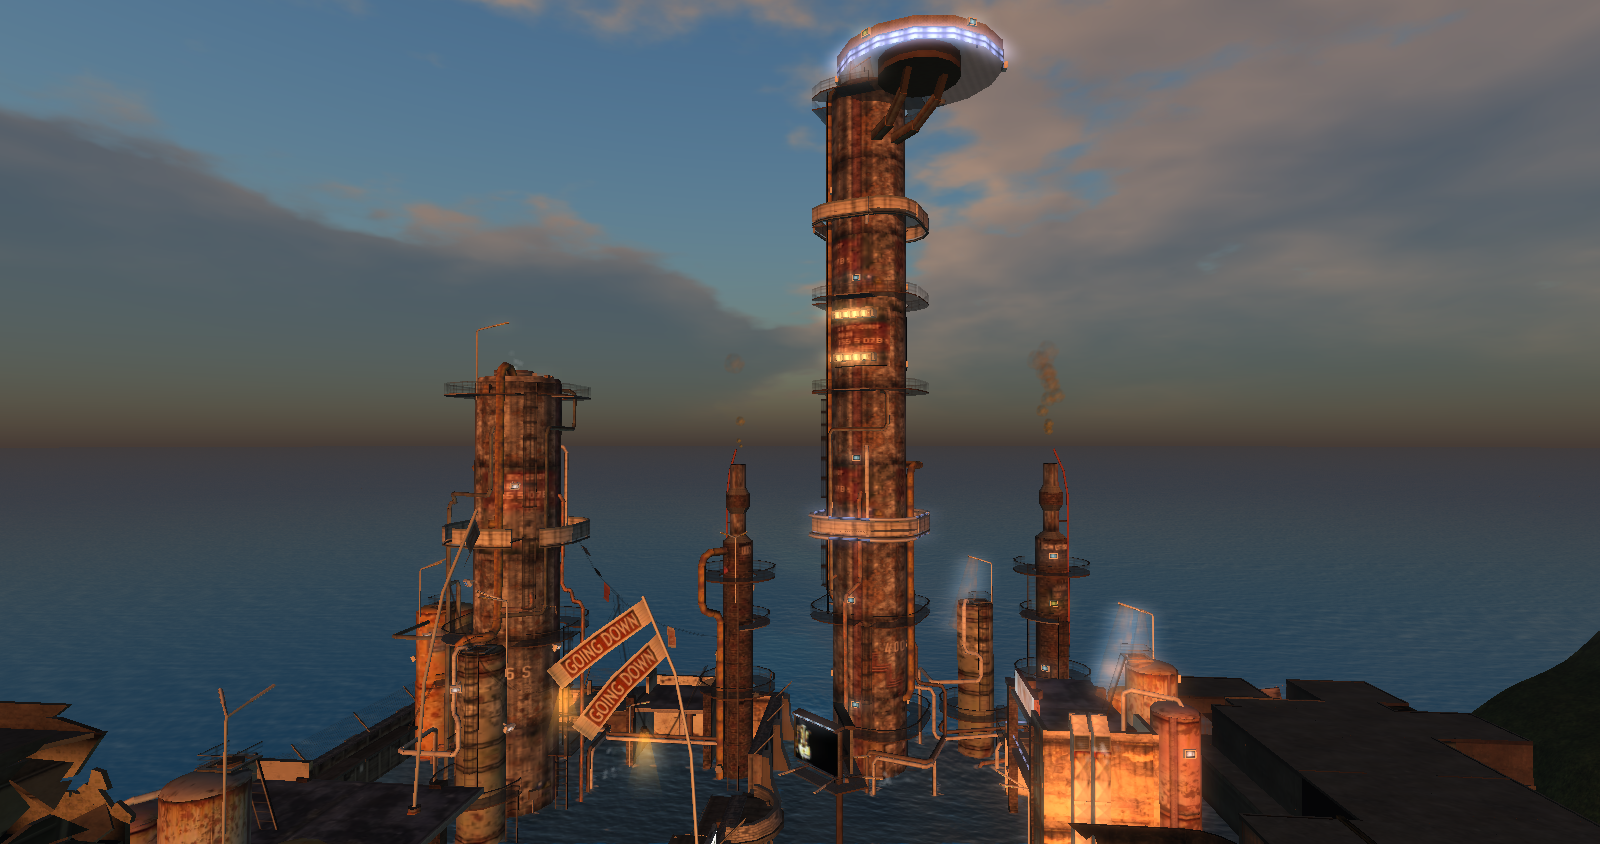 File:Oil Refinery in Second Life.png - Wikimedia Commons: https://commons.wikimedia.org/wiki/file:oil_refinery_in_second_life...